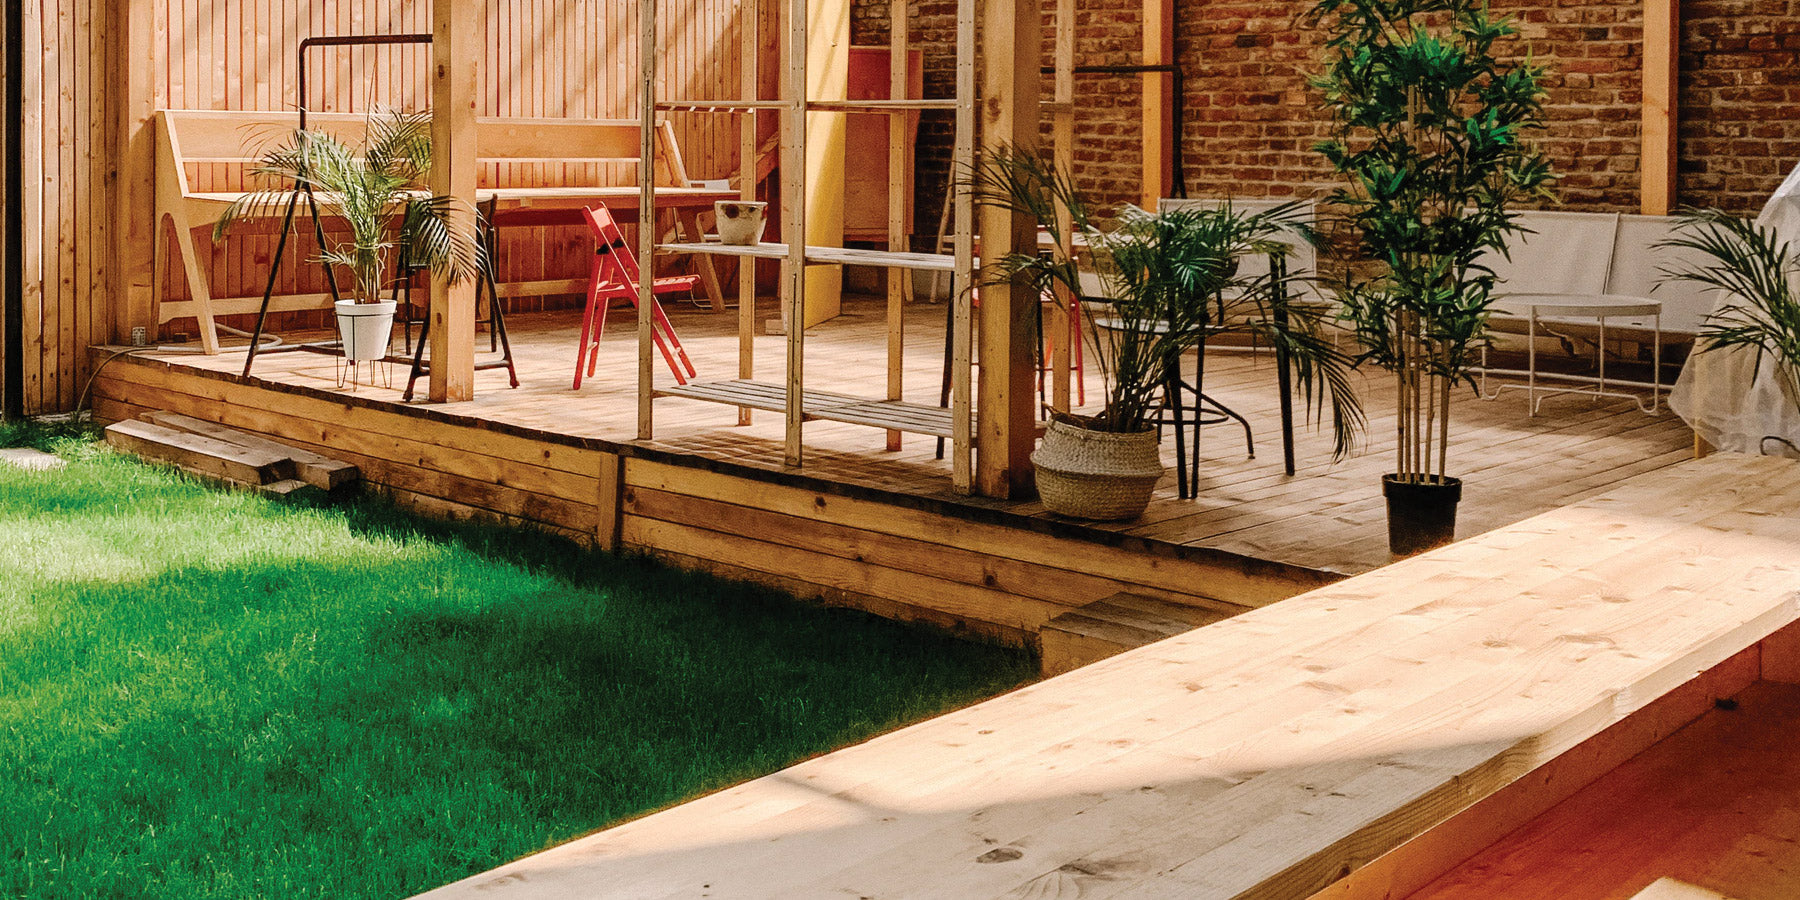 Exterior wooden porch area featuring seating areas, plants, and fresh green grass around it.